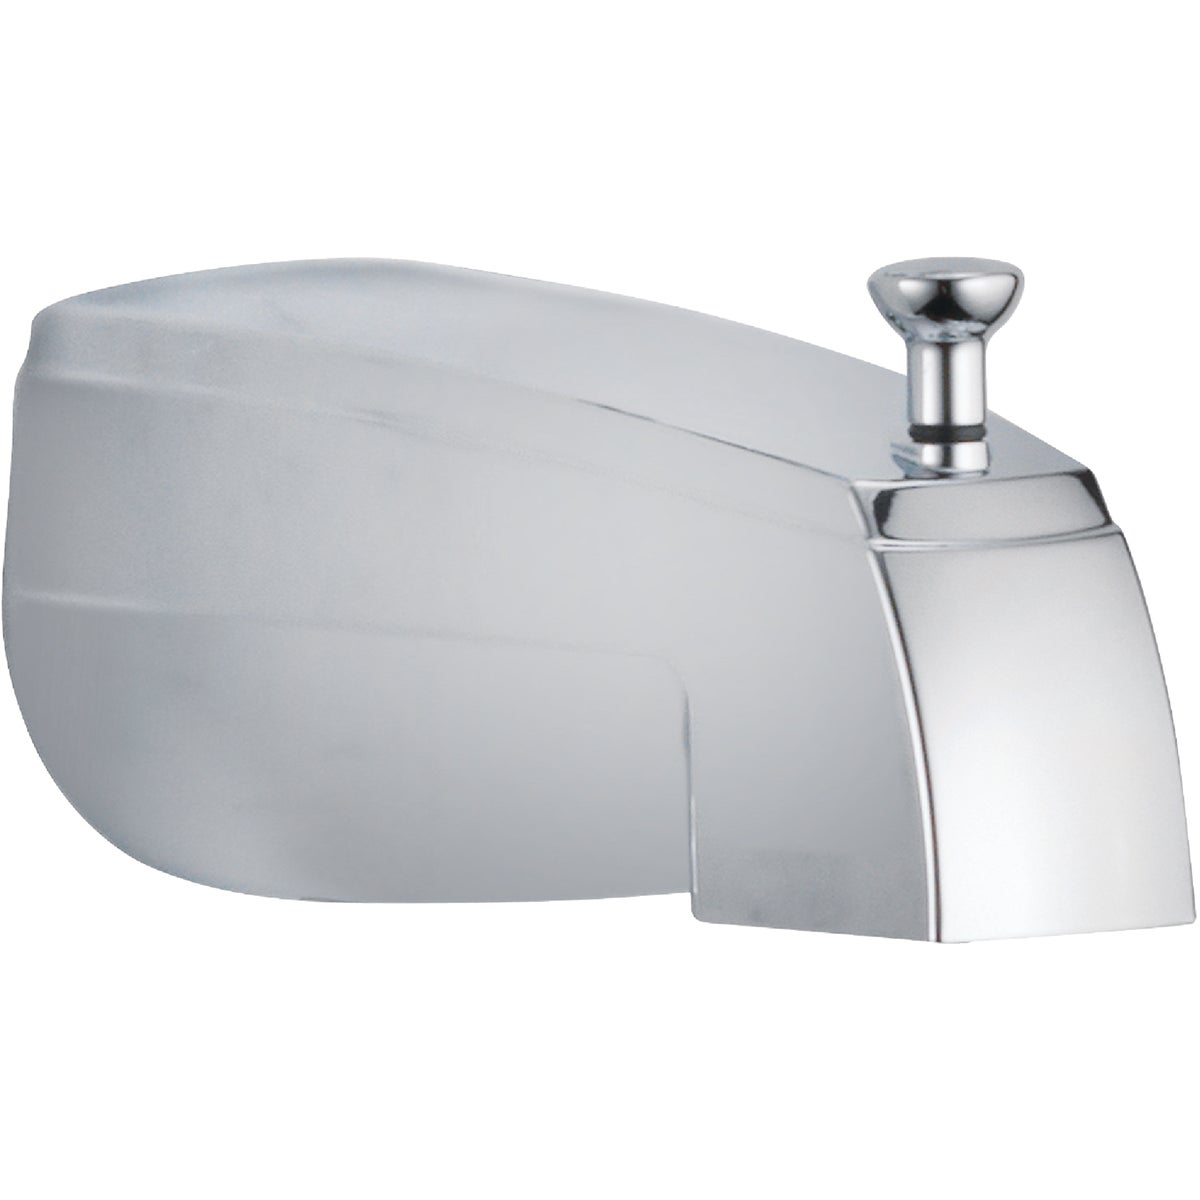 "1/2"" CHROME TUB SPOUT - RP5834 by Delta Faucet Co"